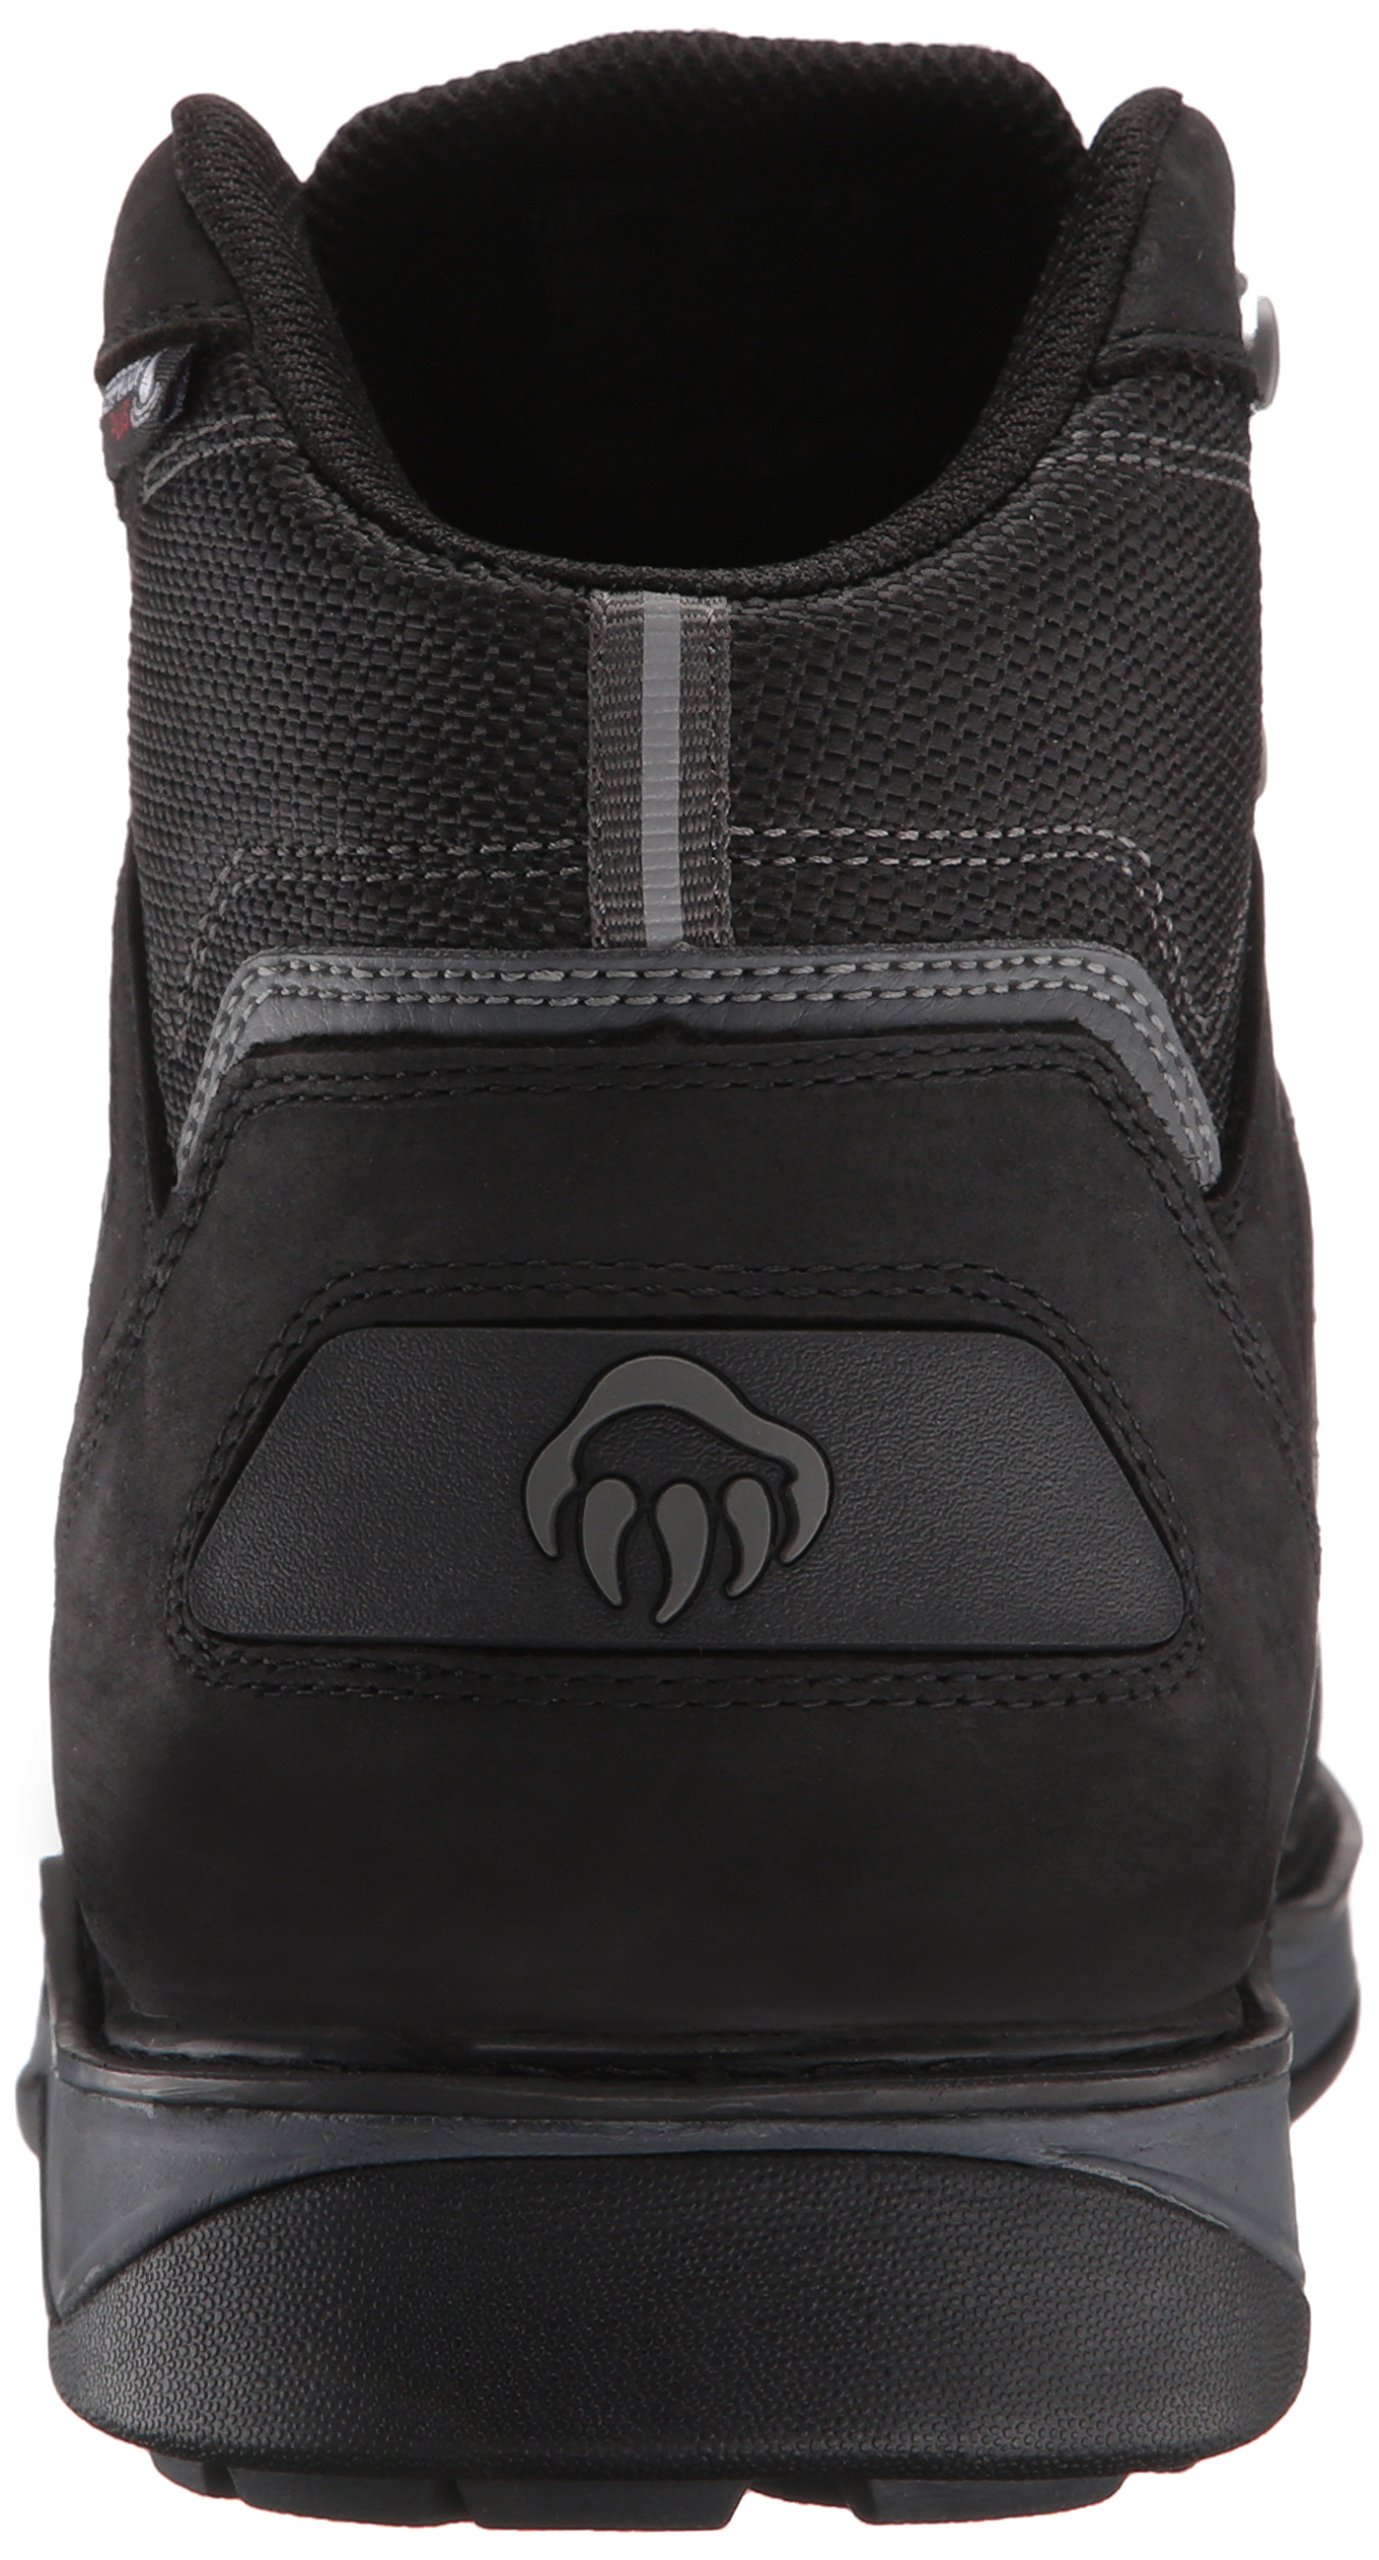 Wolverine Men's Edge LX Nano Toe Work Boot, Black/Grey, 11.5 M US by Wolverine (Image #2)